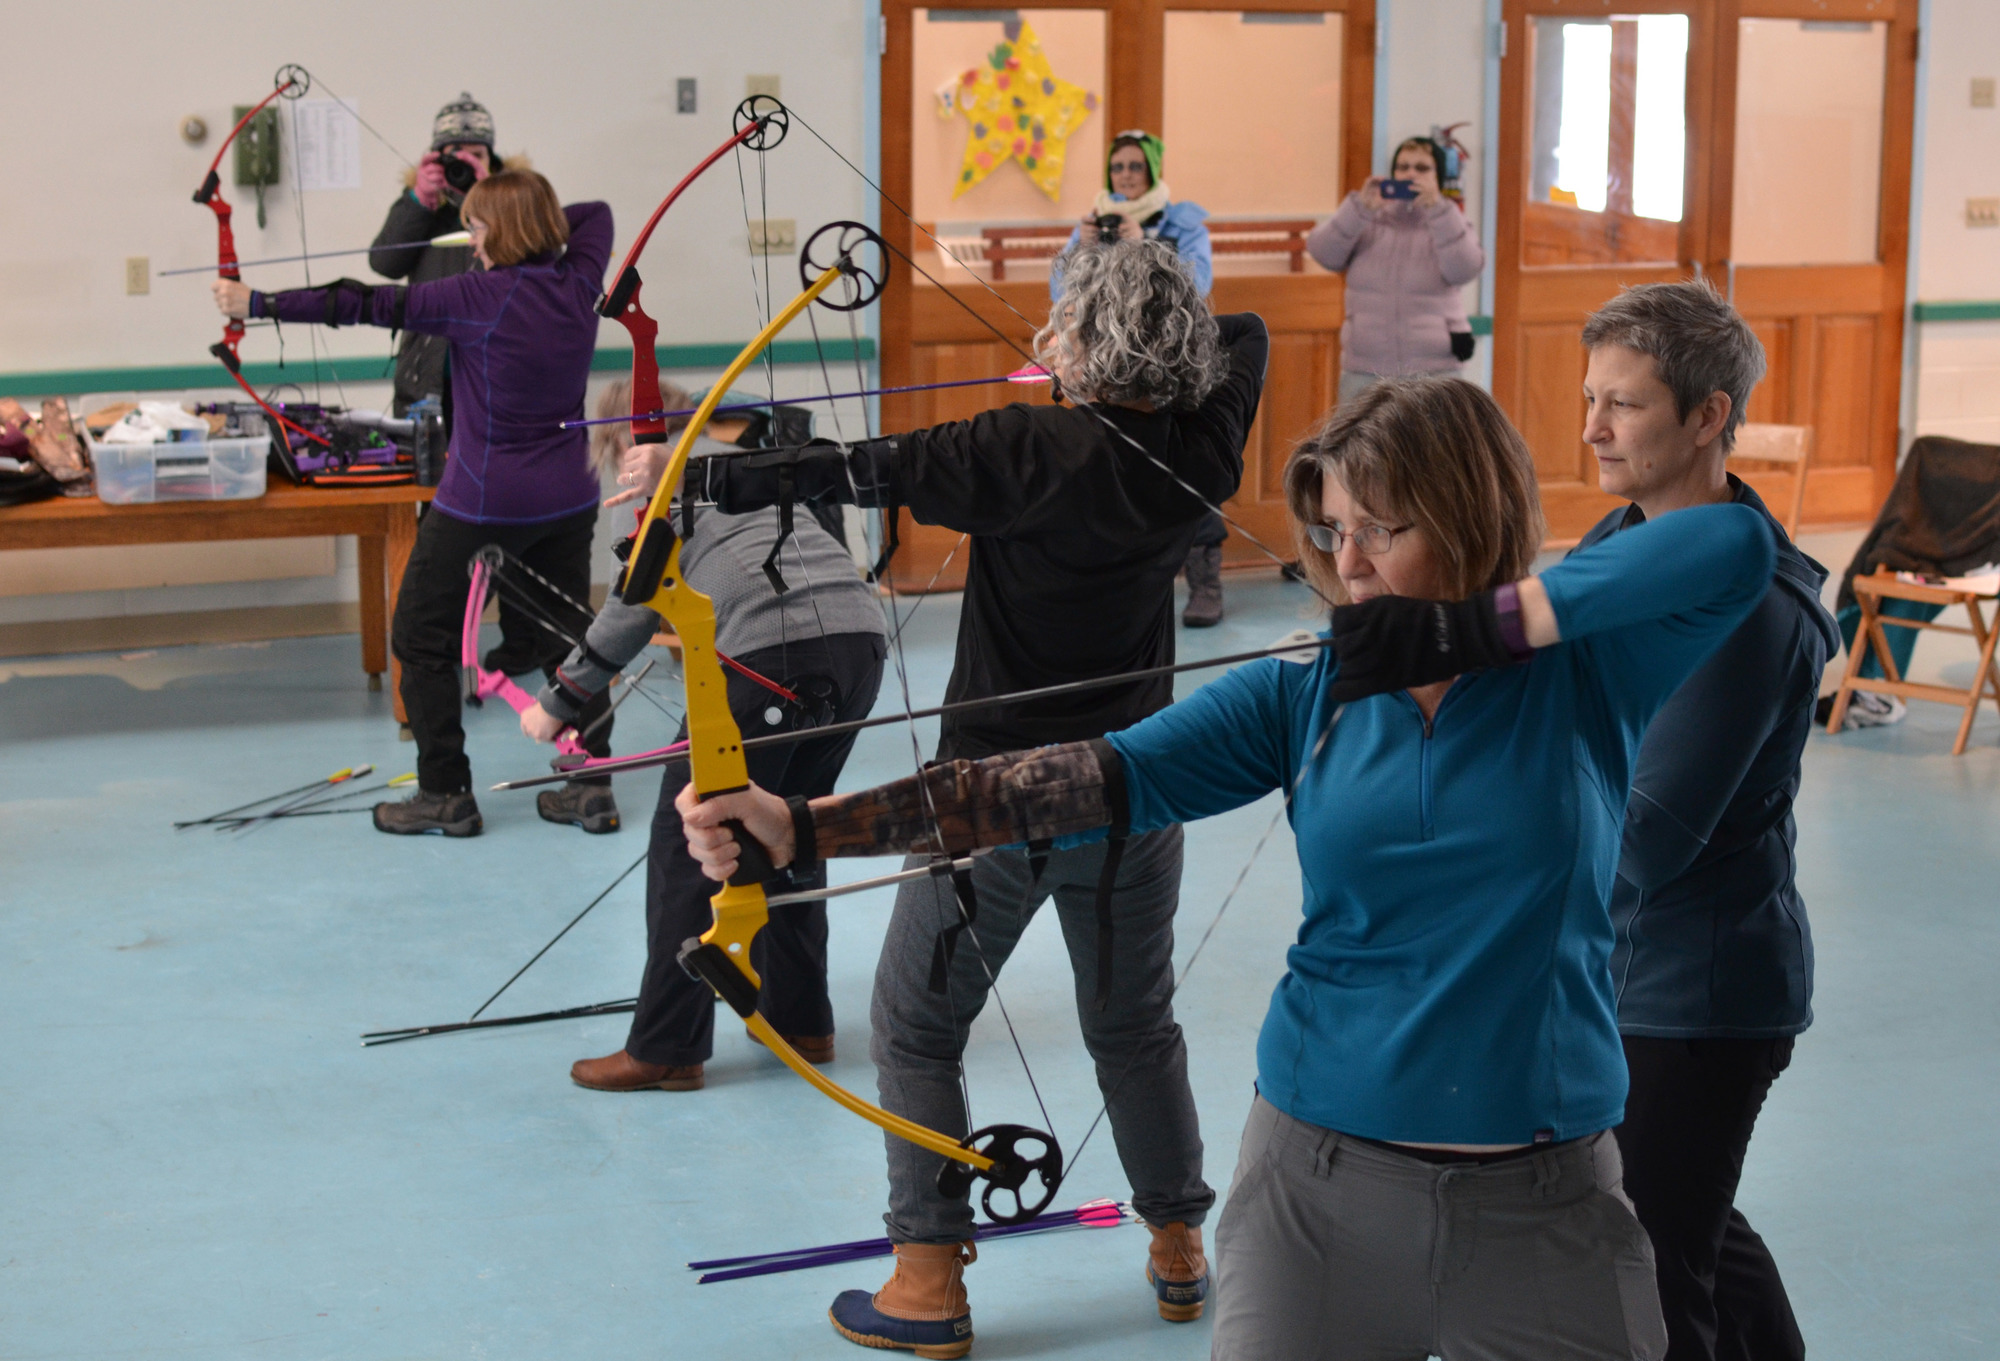 Archery is taught during summer and winter sessions.